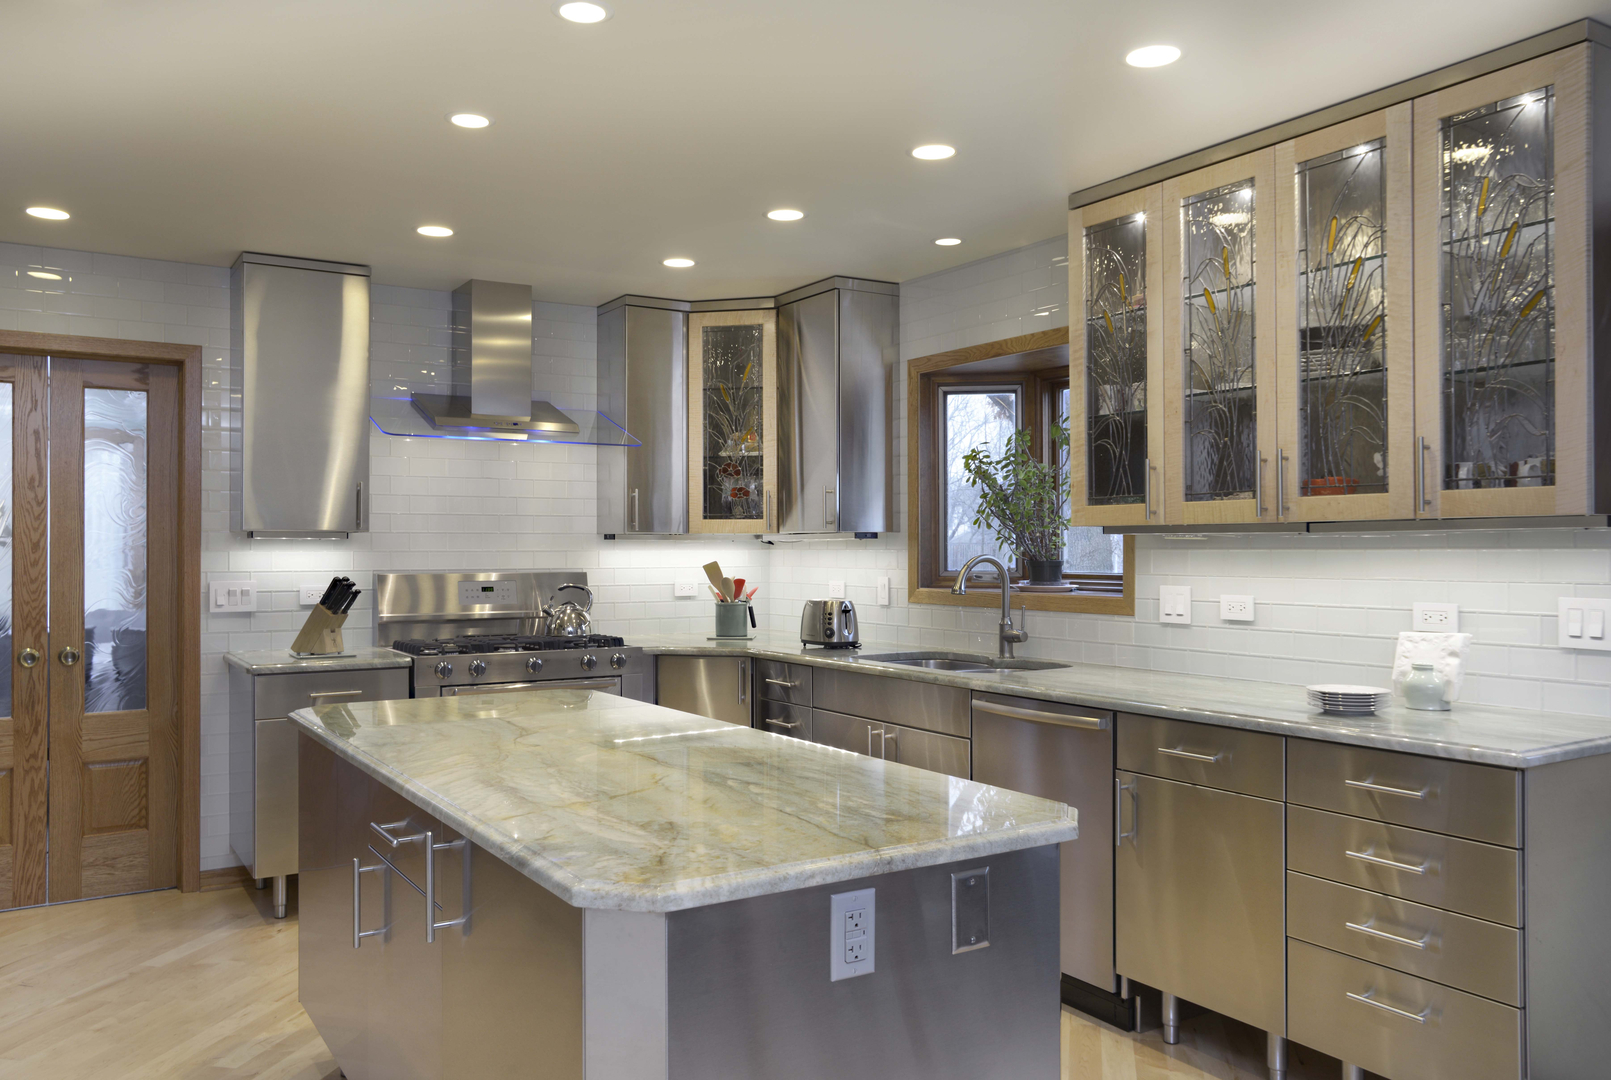 Design Stainless Steel Kitchen Cabinets stainless steel kitchens kitchen cabinets countertops metal cabinets